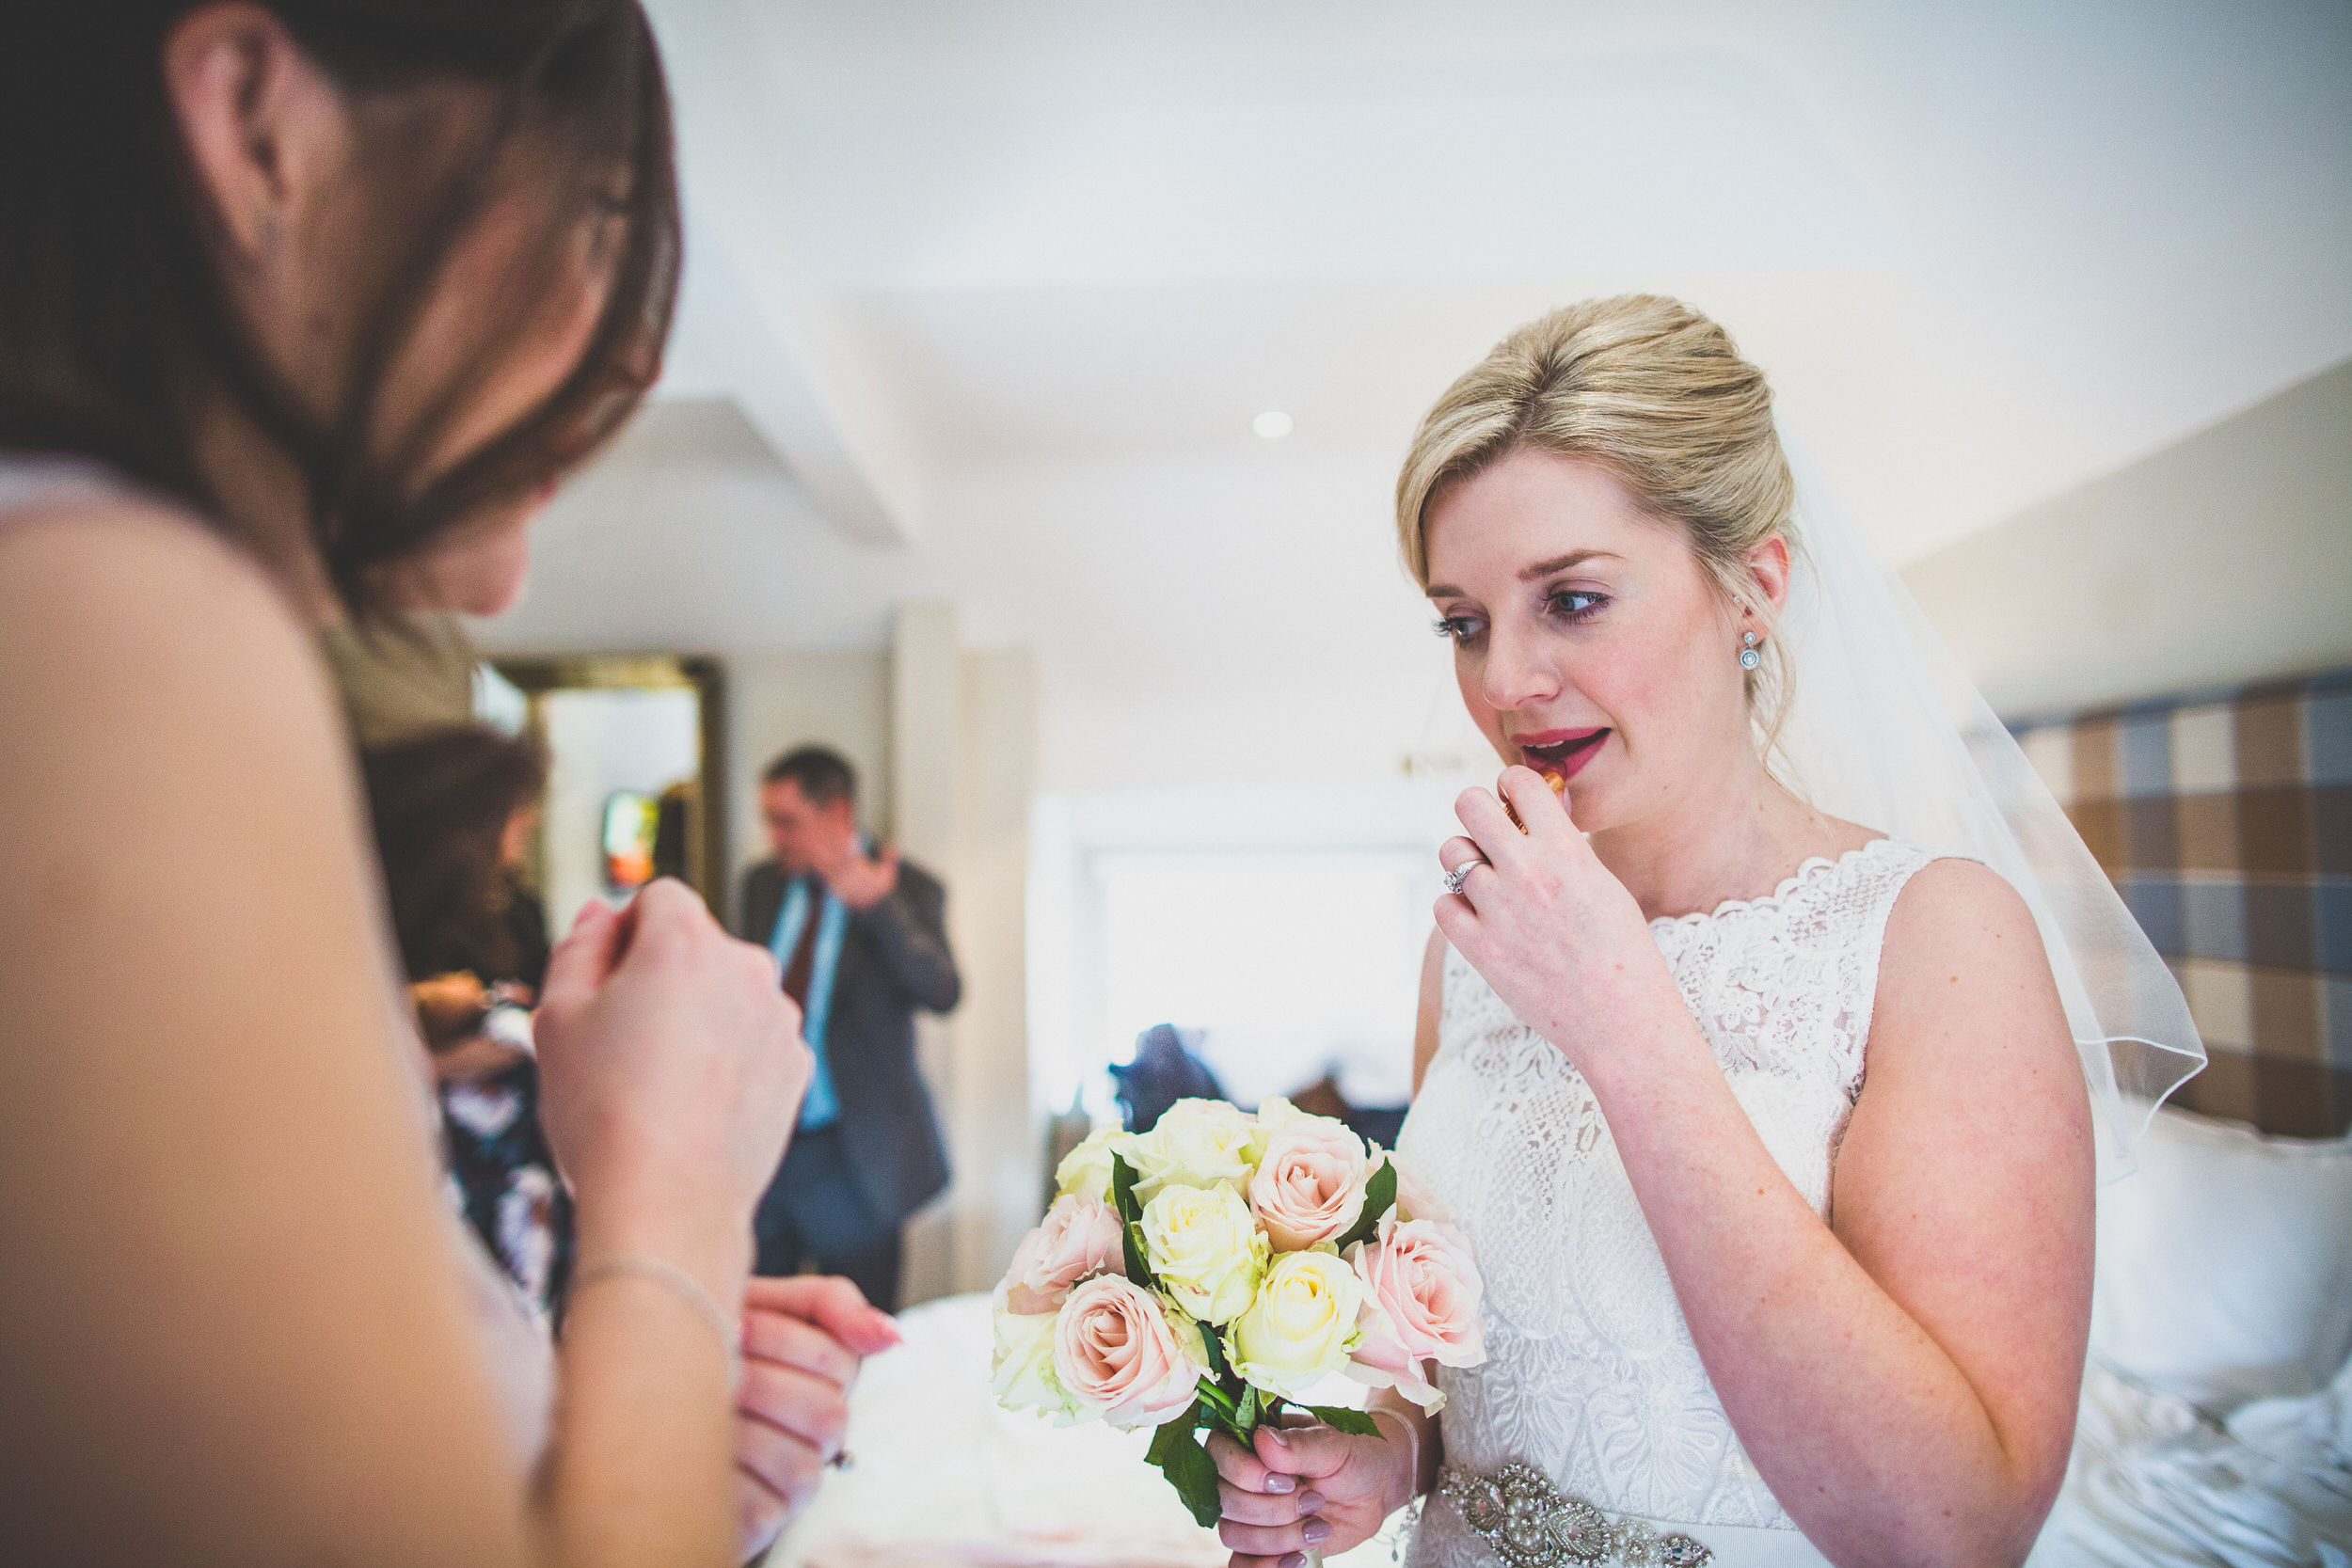 lipstick touch ups on her wedding day